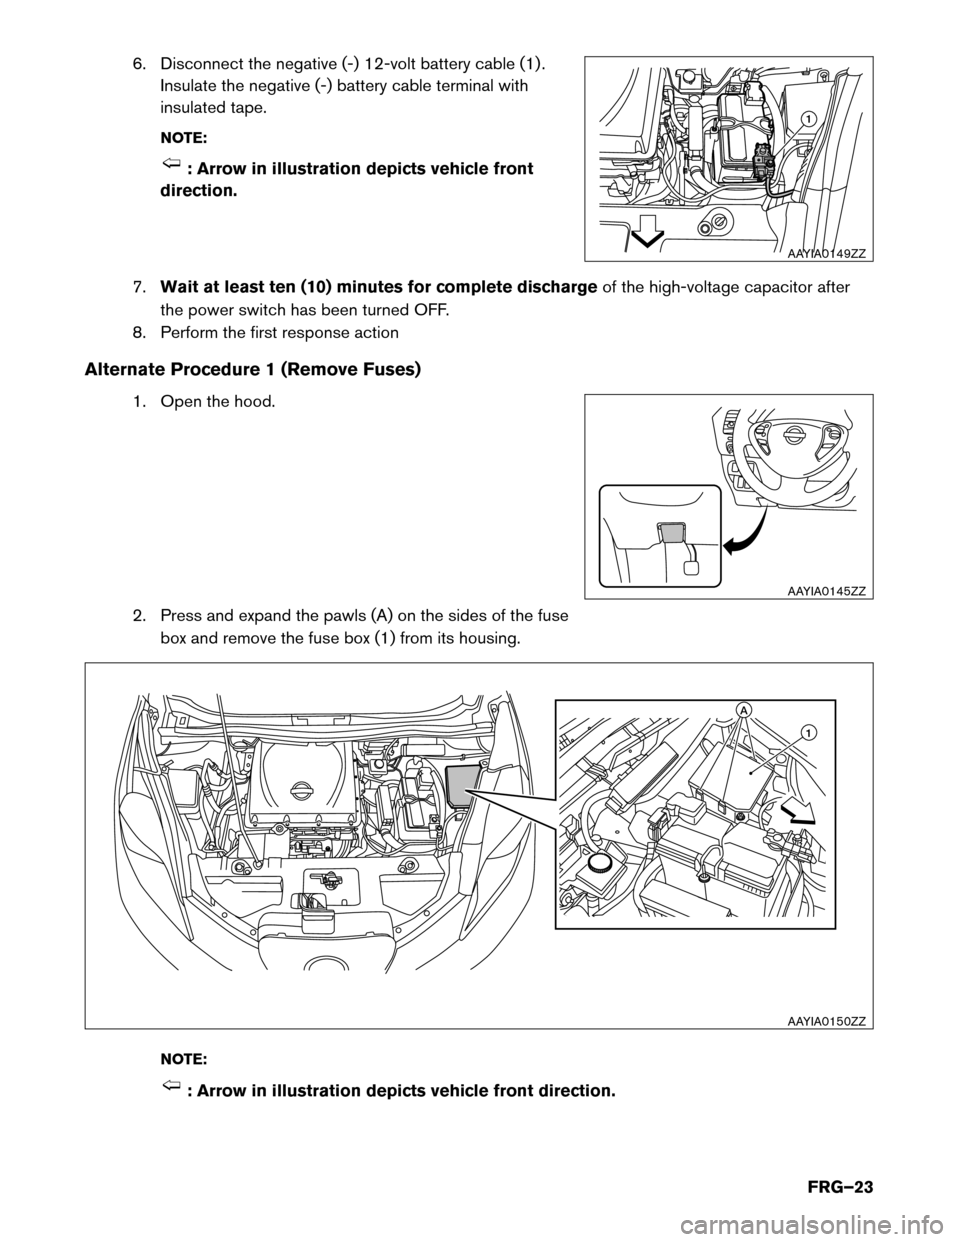 Fuses Nissan Leaf 2017 1g First Responders Guide Note Fuse Box Cover Page 23